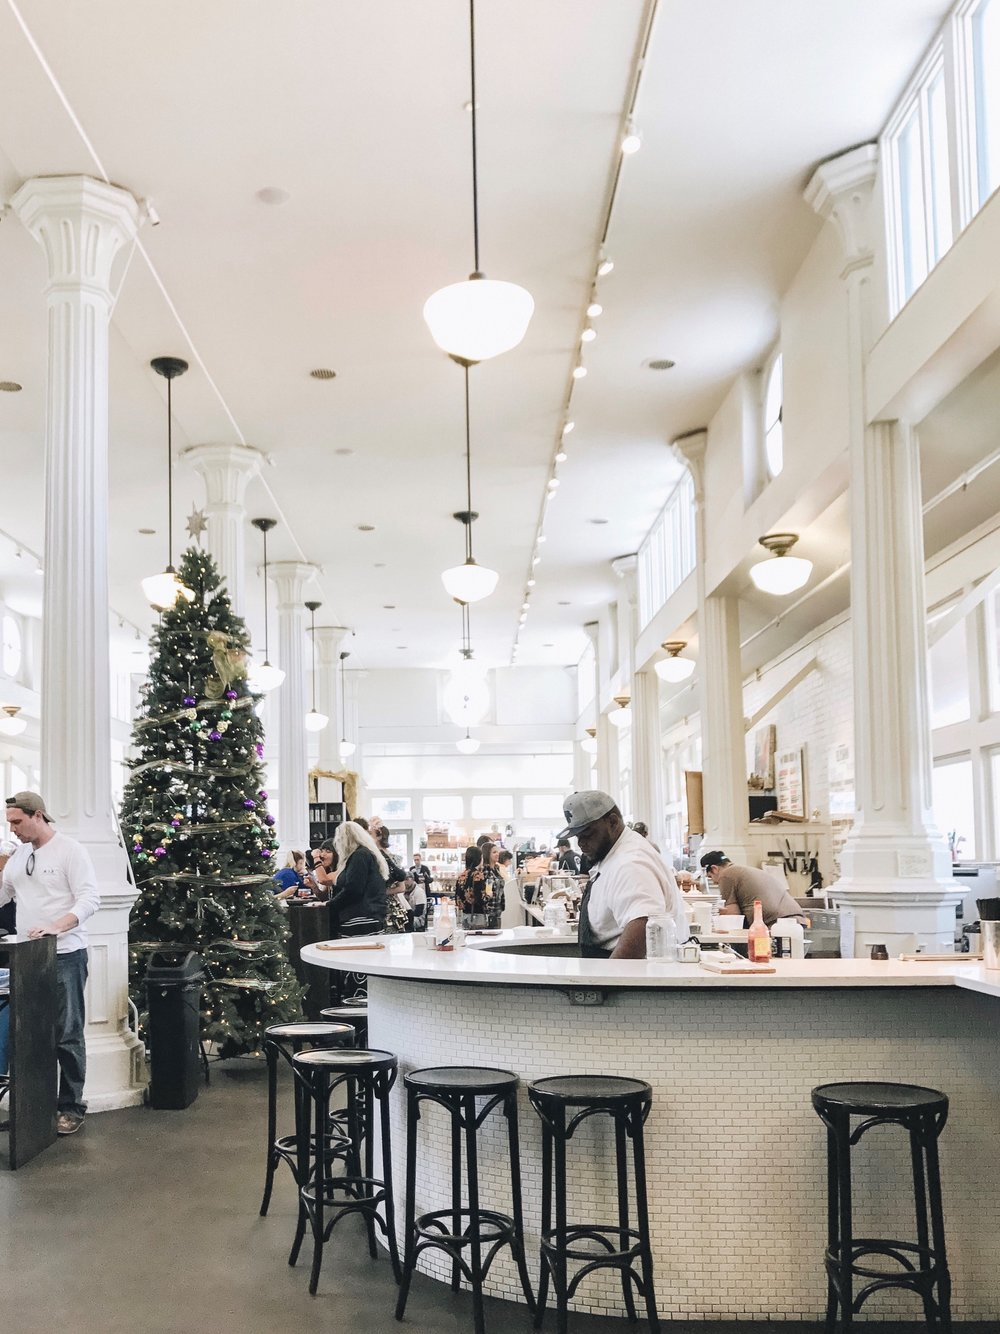 Best Restaurants in New Orleans | St. Roch Market